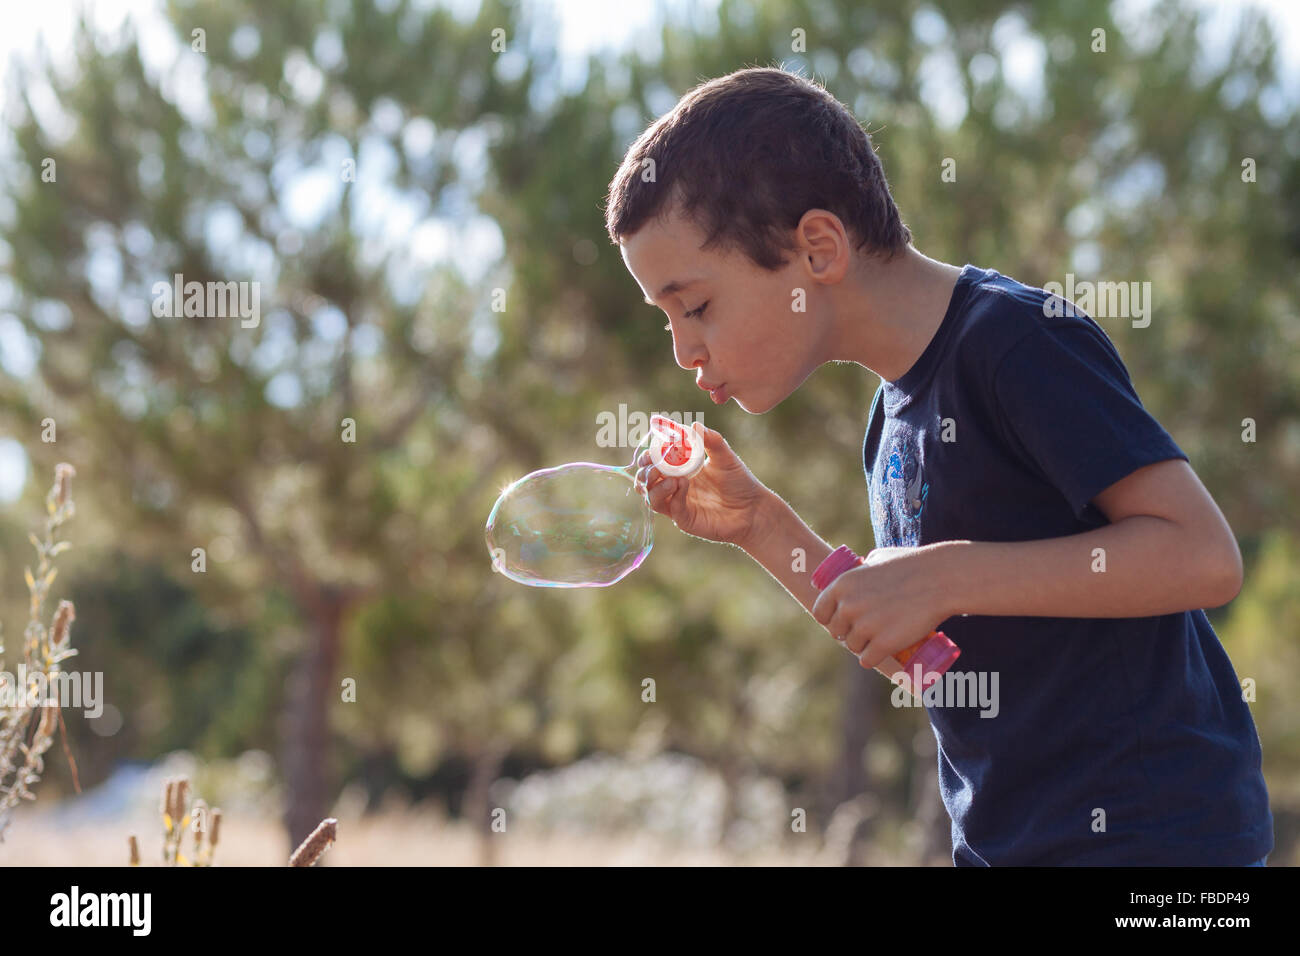 Boy Blowing Bubbles On Plants - Stock Image